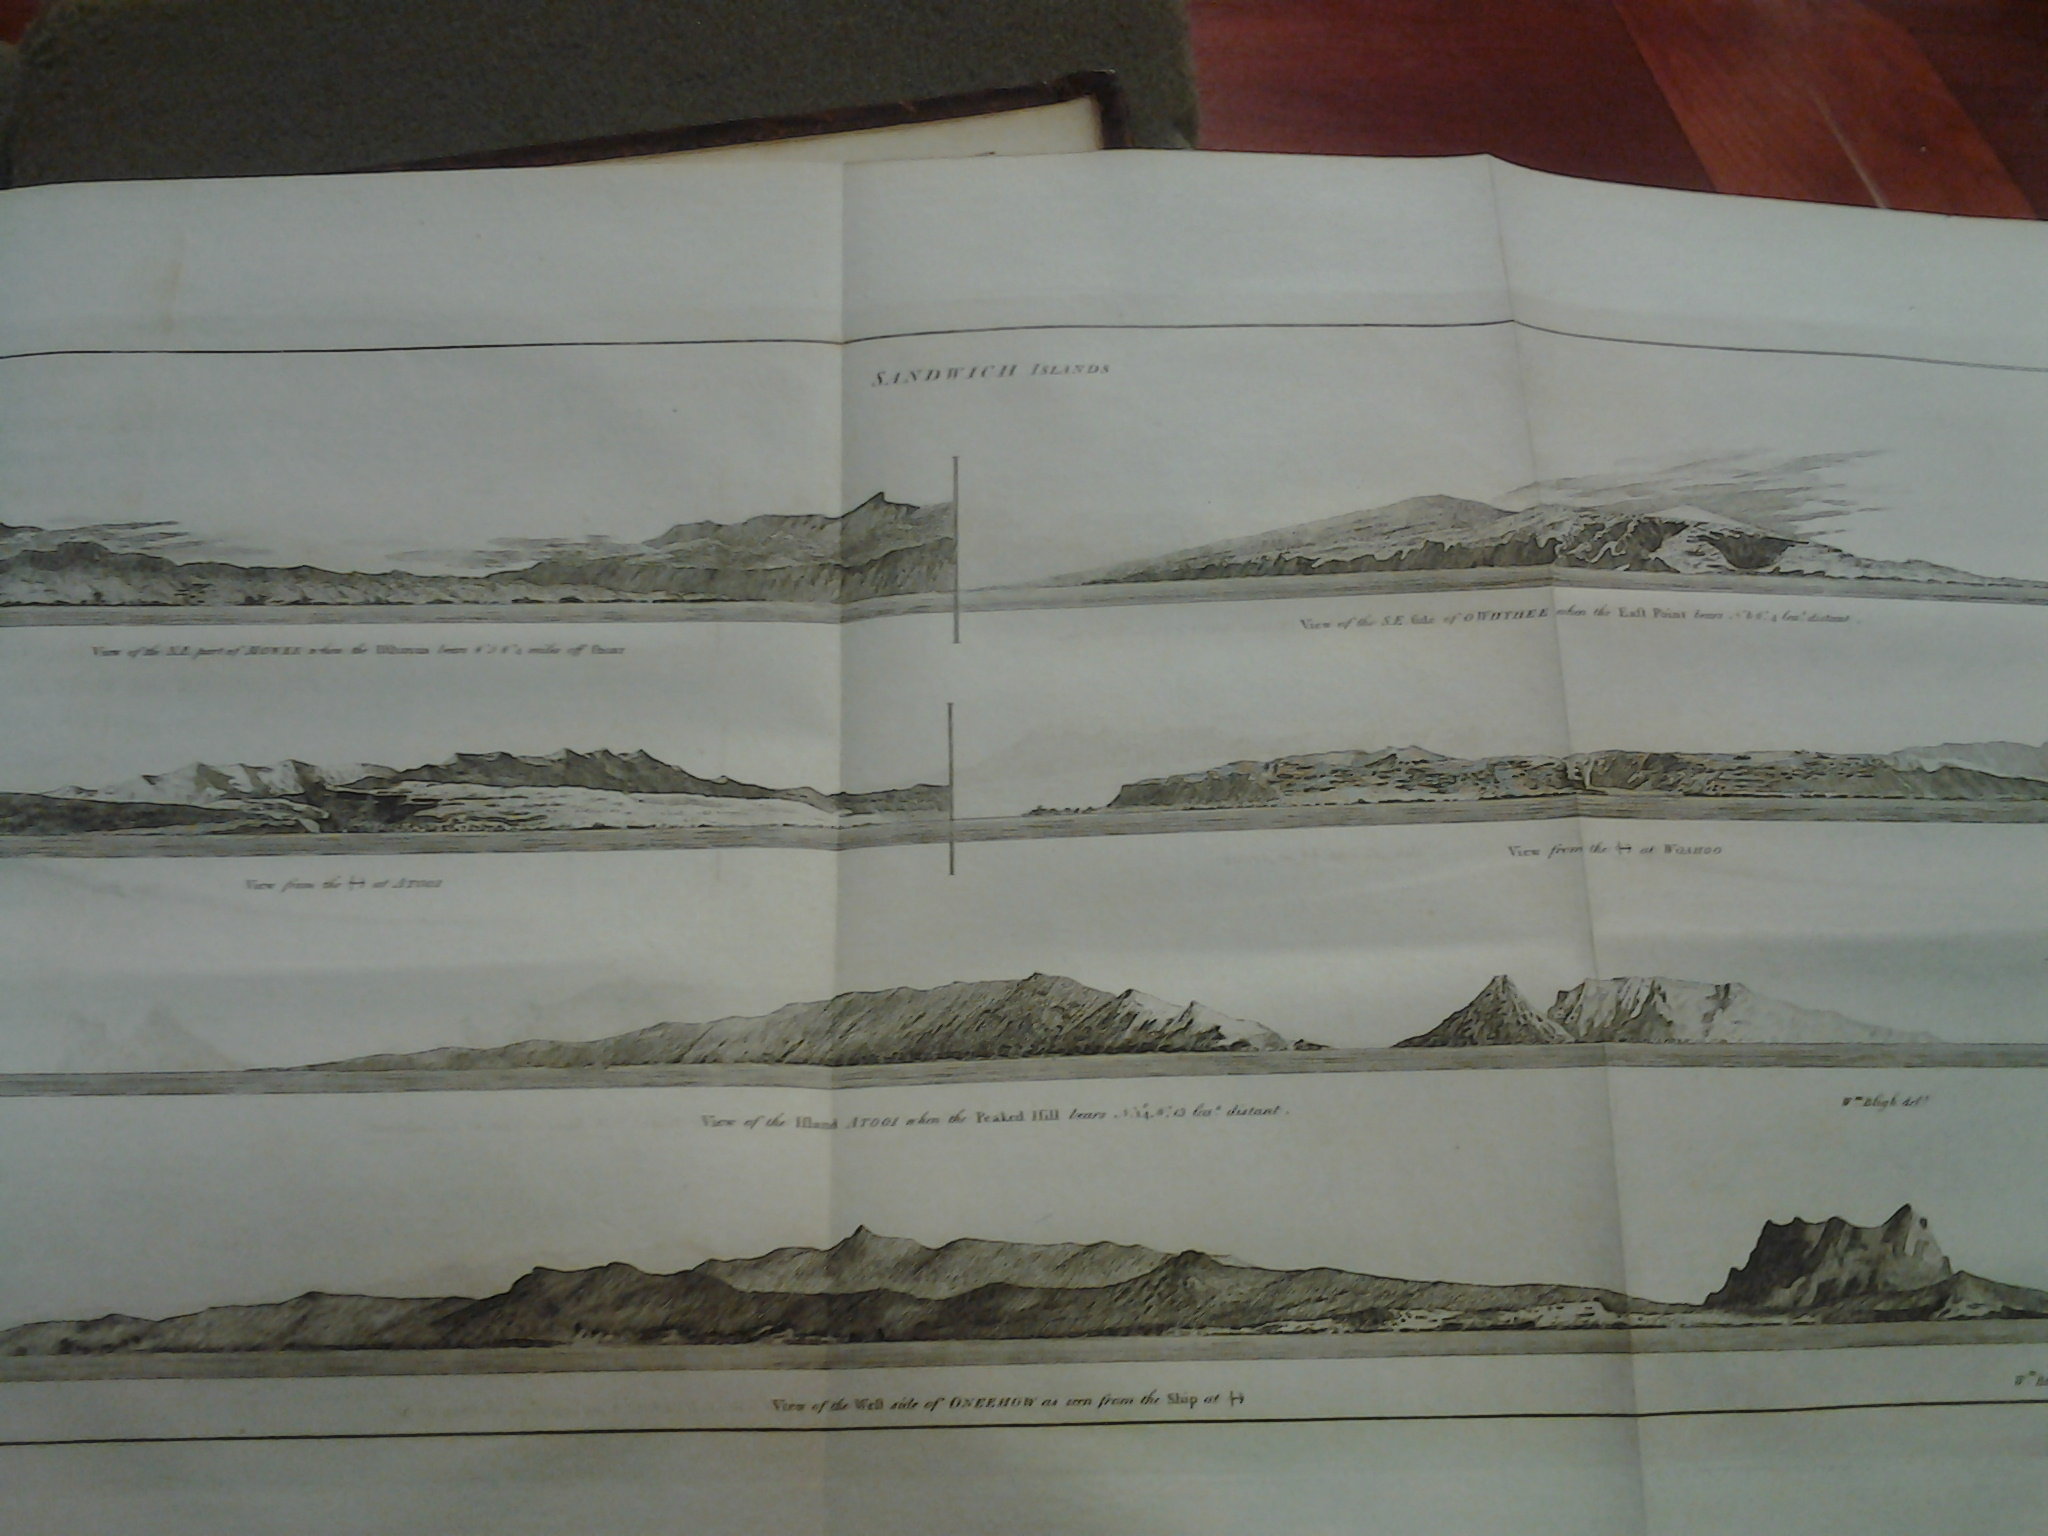 Cook's landscape profiles of the Sandwich Islands, also known as Hawaii